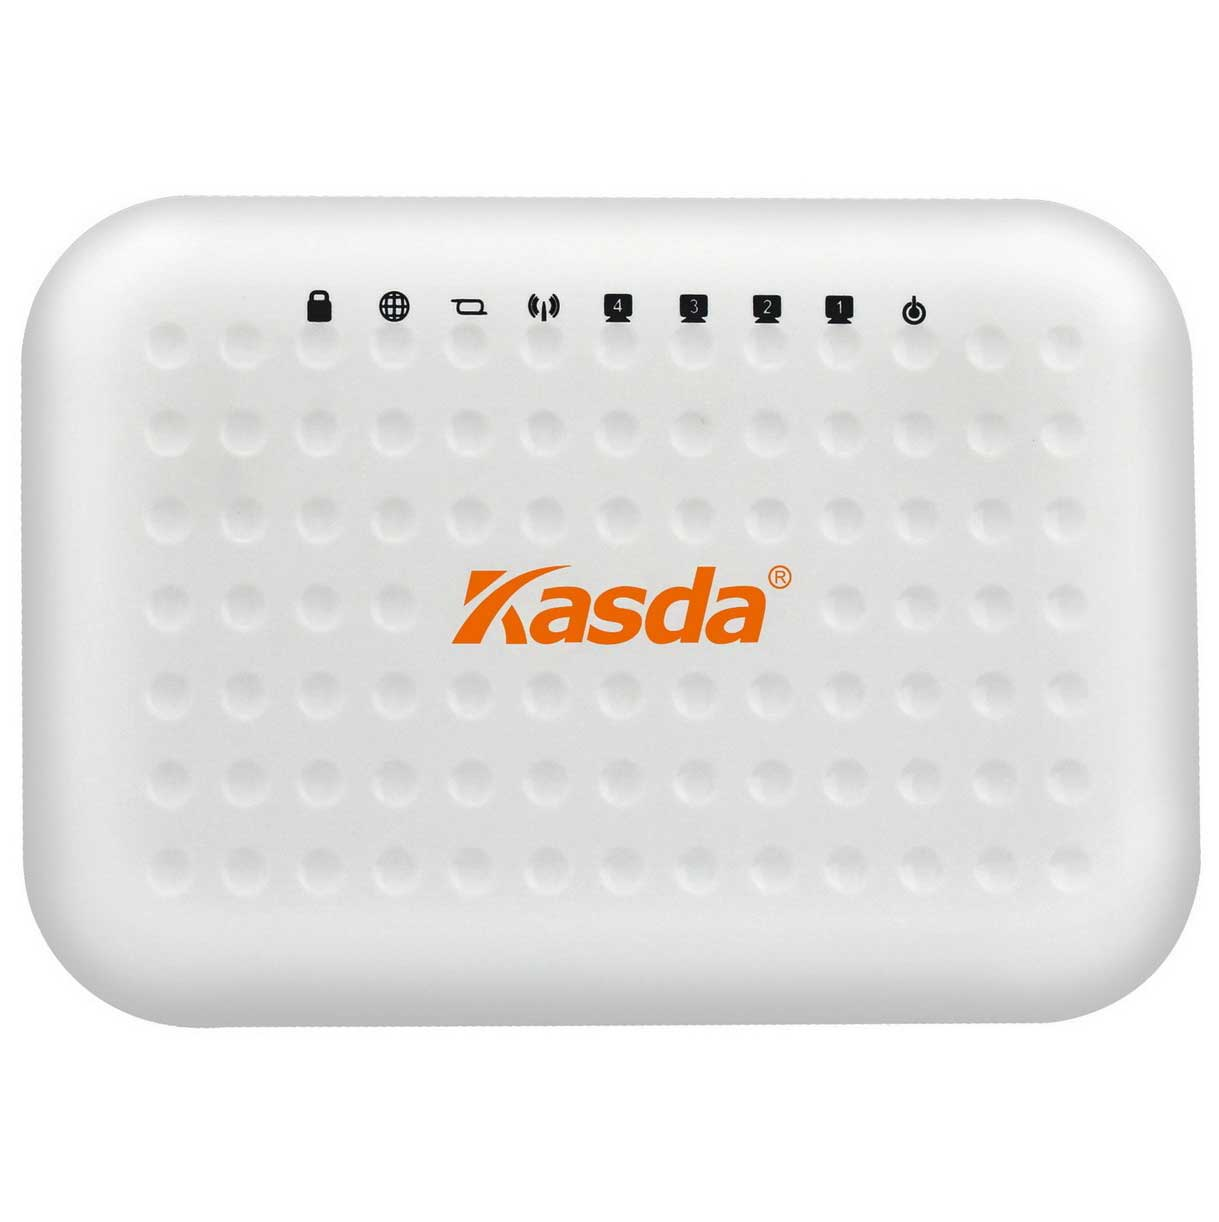 Kasda Wireless ADSL2+ Modem Router KW58293